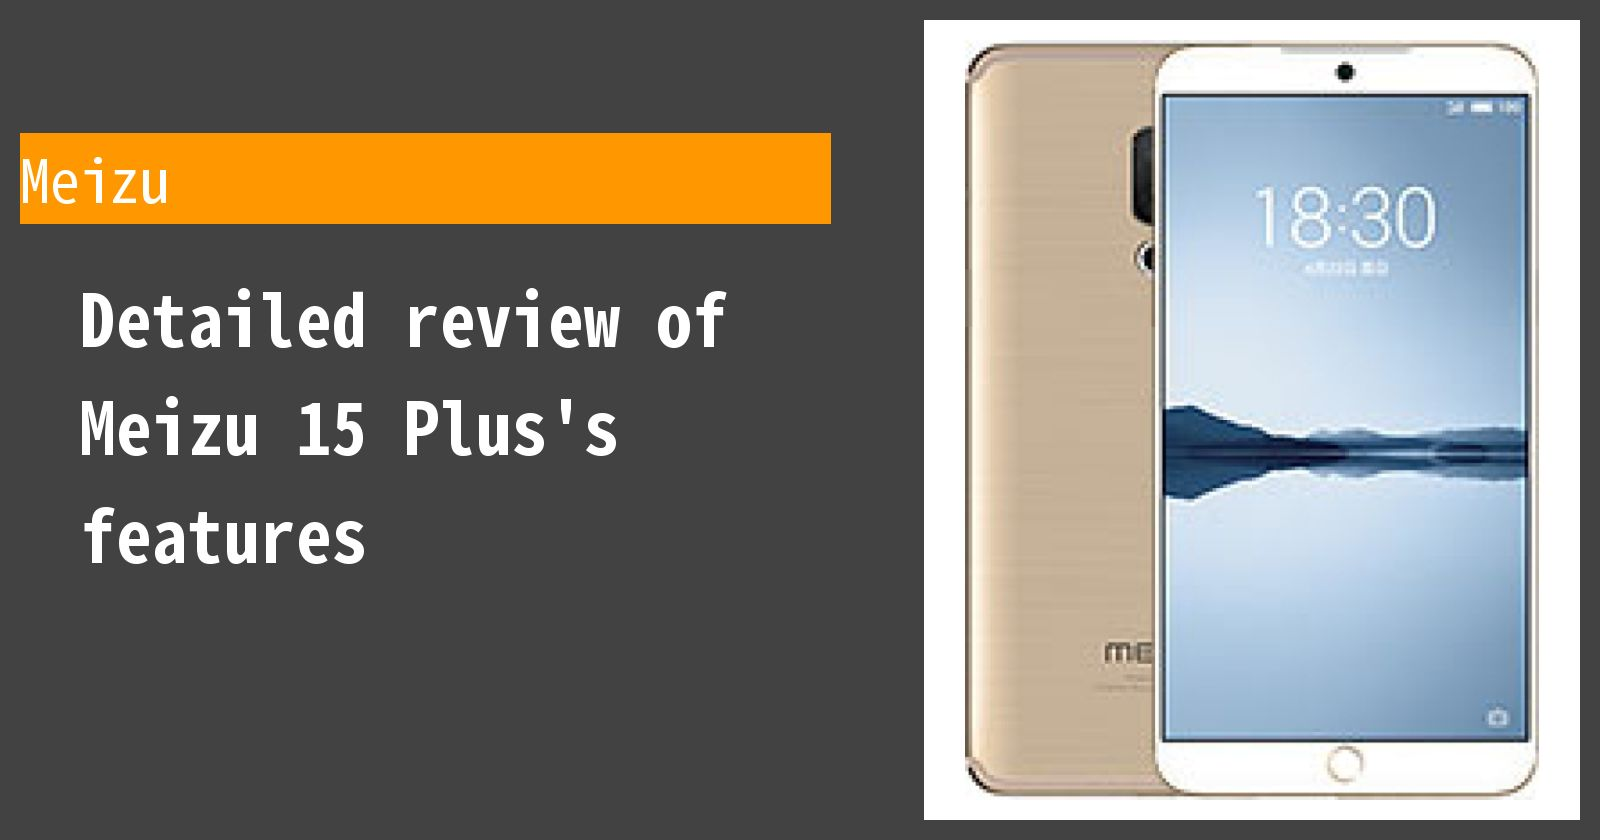 Detailed review of Meizu 15 Plus's features